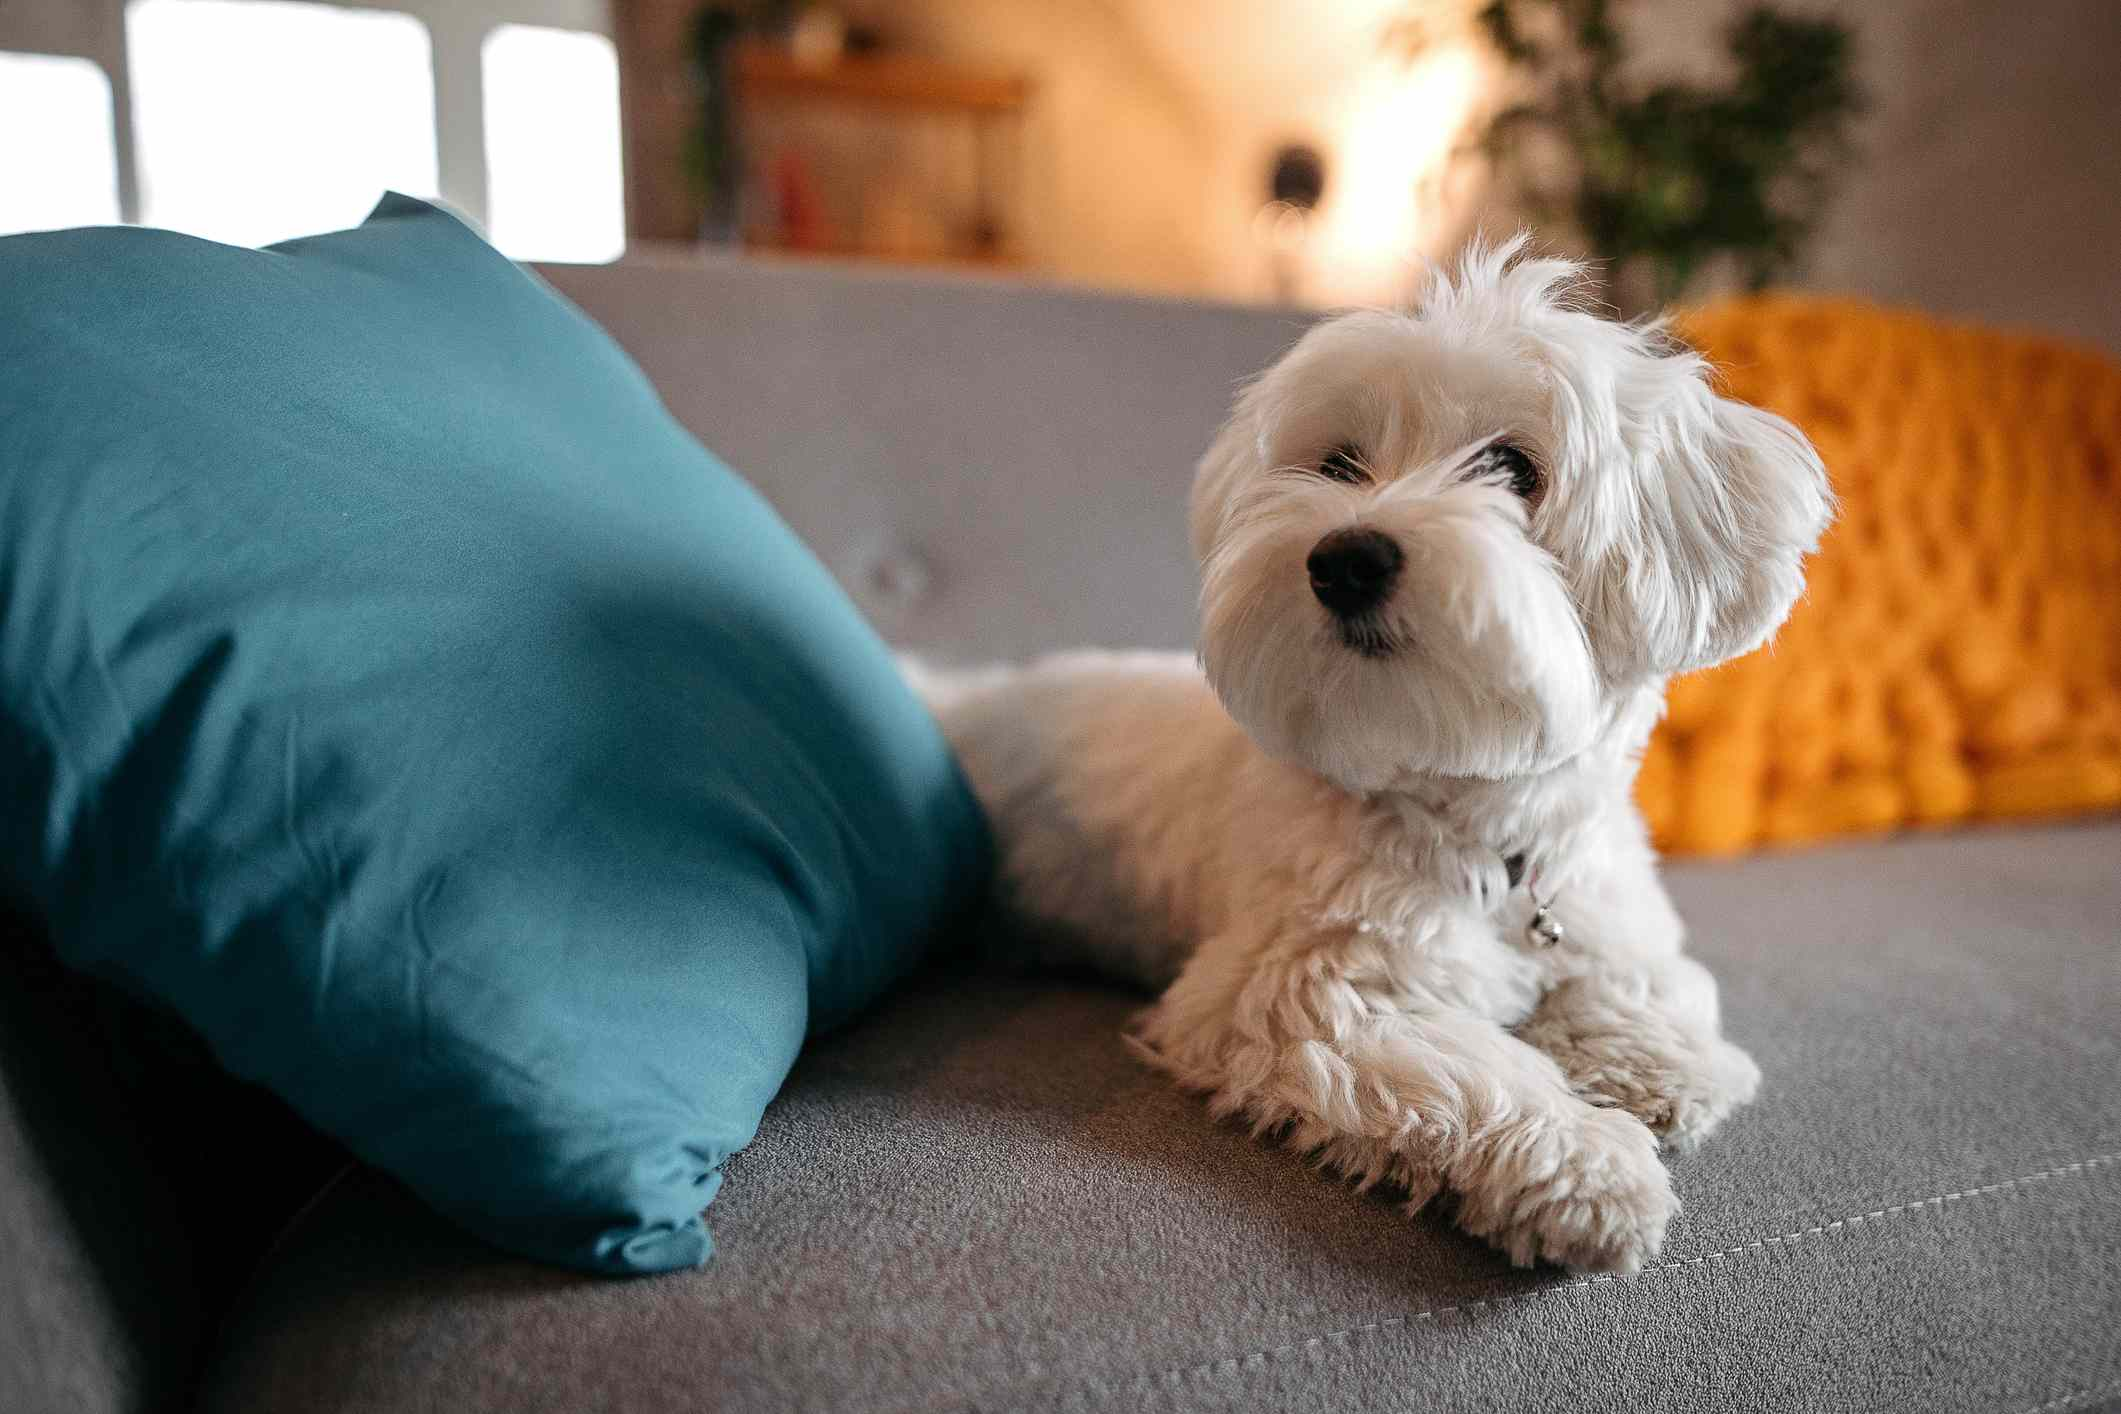 A white, fluffy, small dog laying on the couch next to throw pillows.